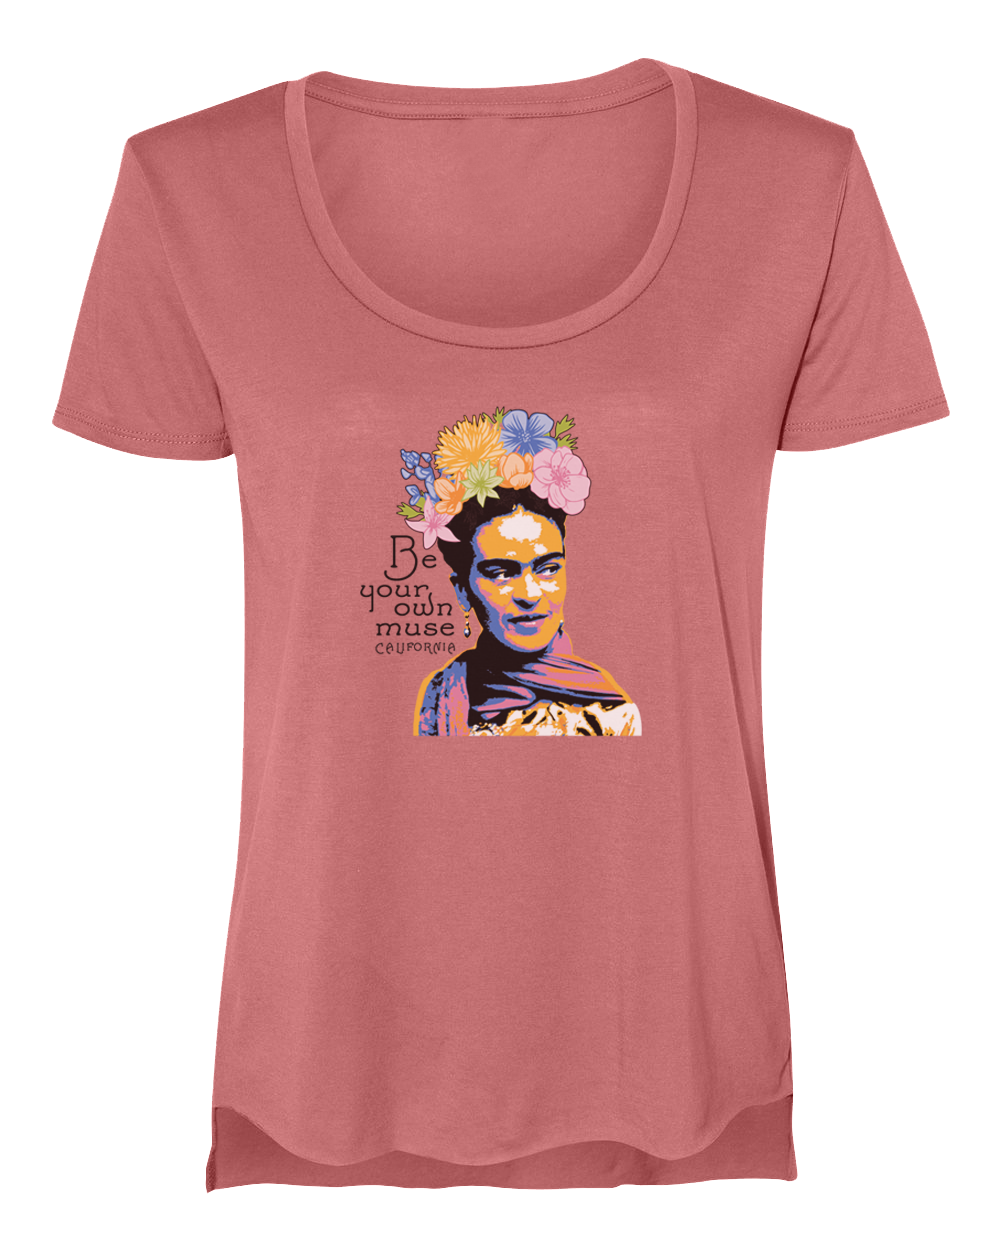 The Muse Womens Festival Tee